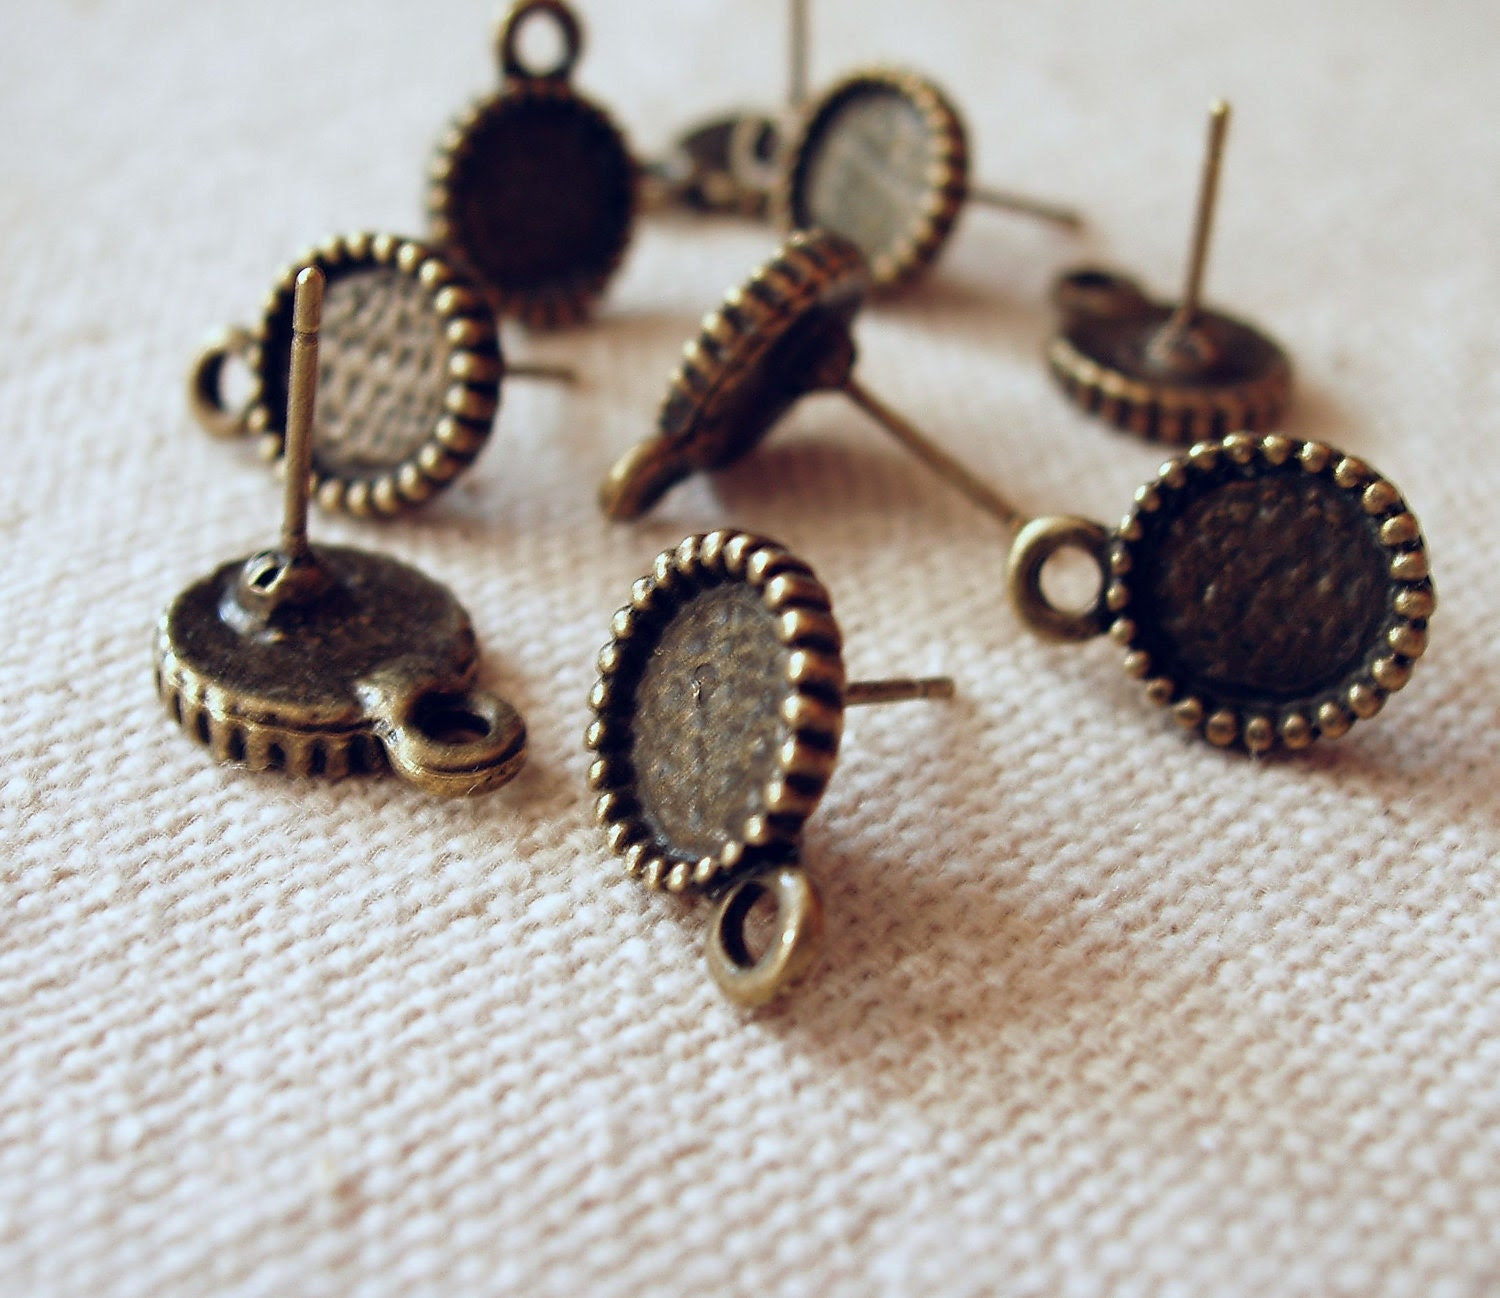 20pcs (10pairs) Antiqued Bronze  Color Plated Earring Posts With 8mm Cameo Settings 05798 - buyimeiren2010